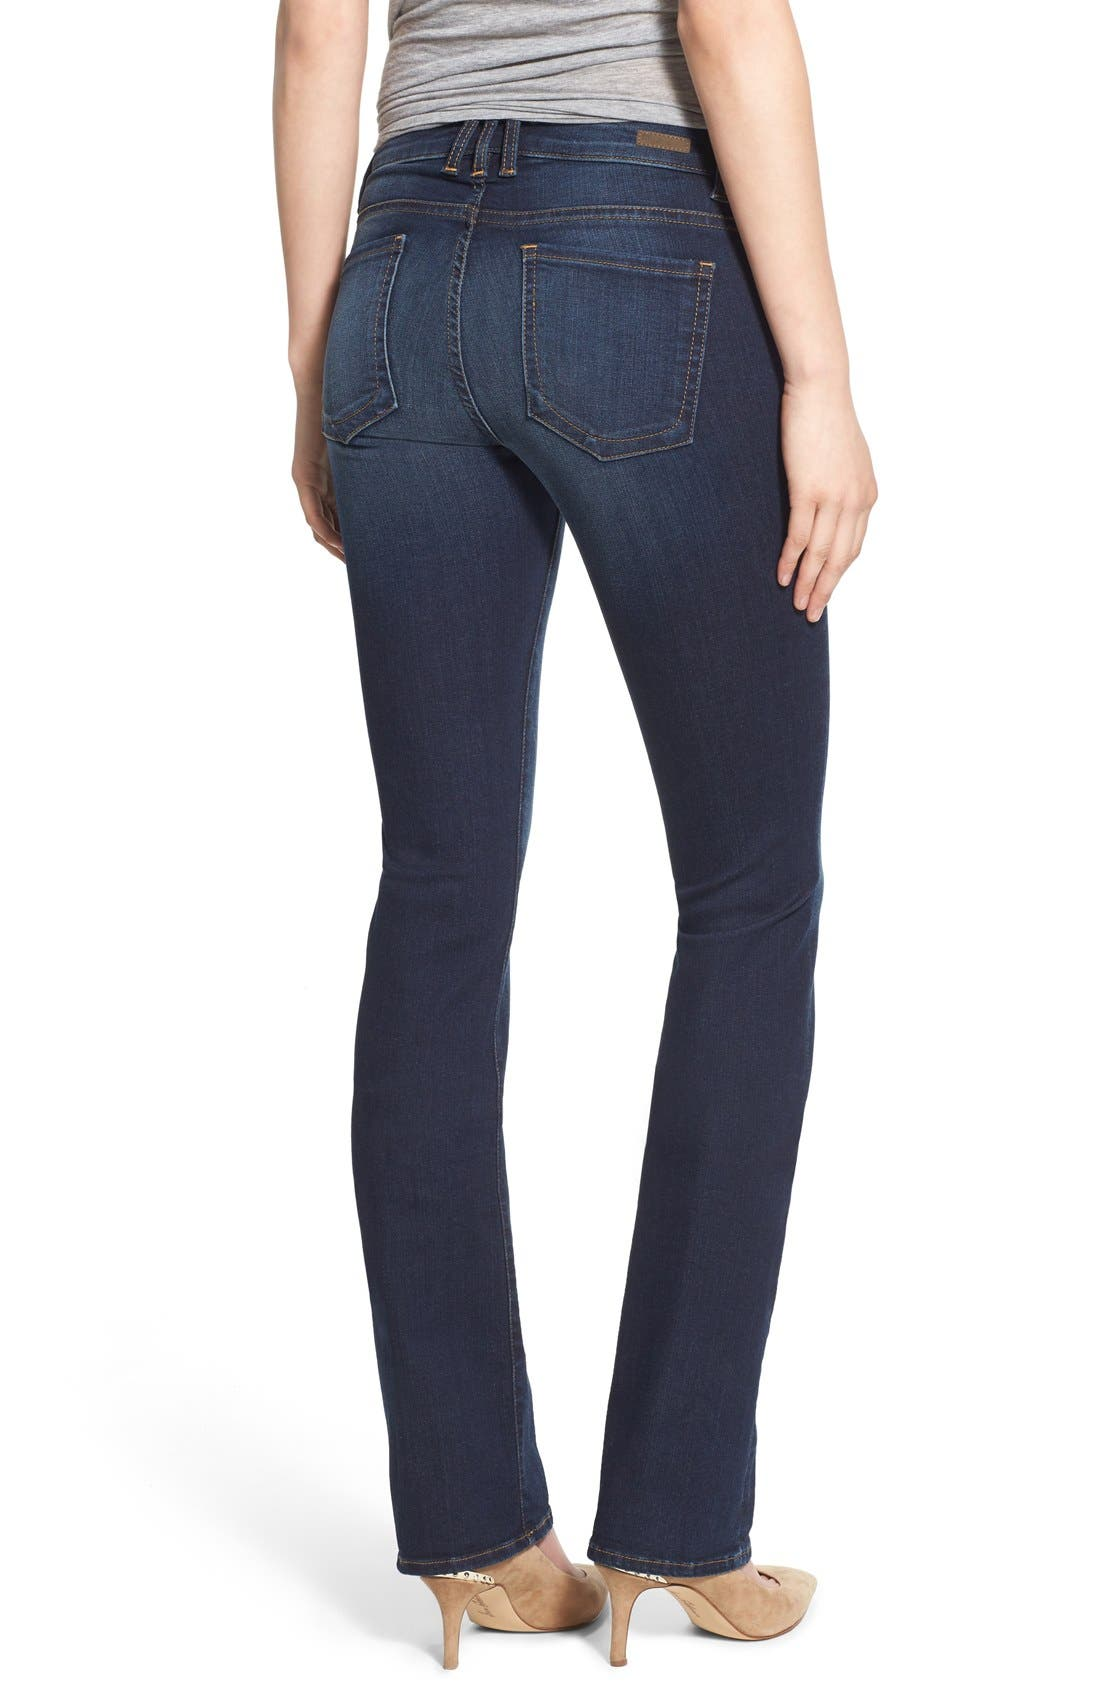 Alternate Image 3  - KUT from the Kloth 'Natalie' Stretch Bootleg Jeans (Closeness)